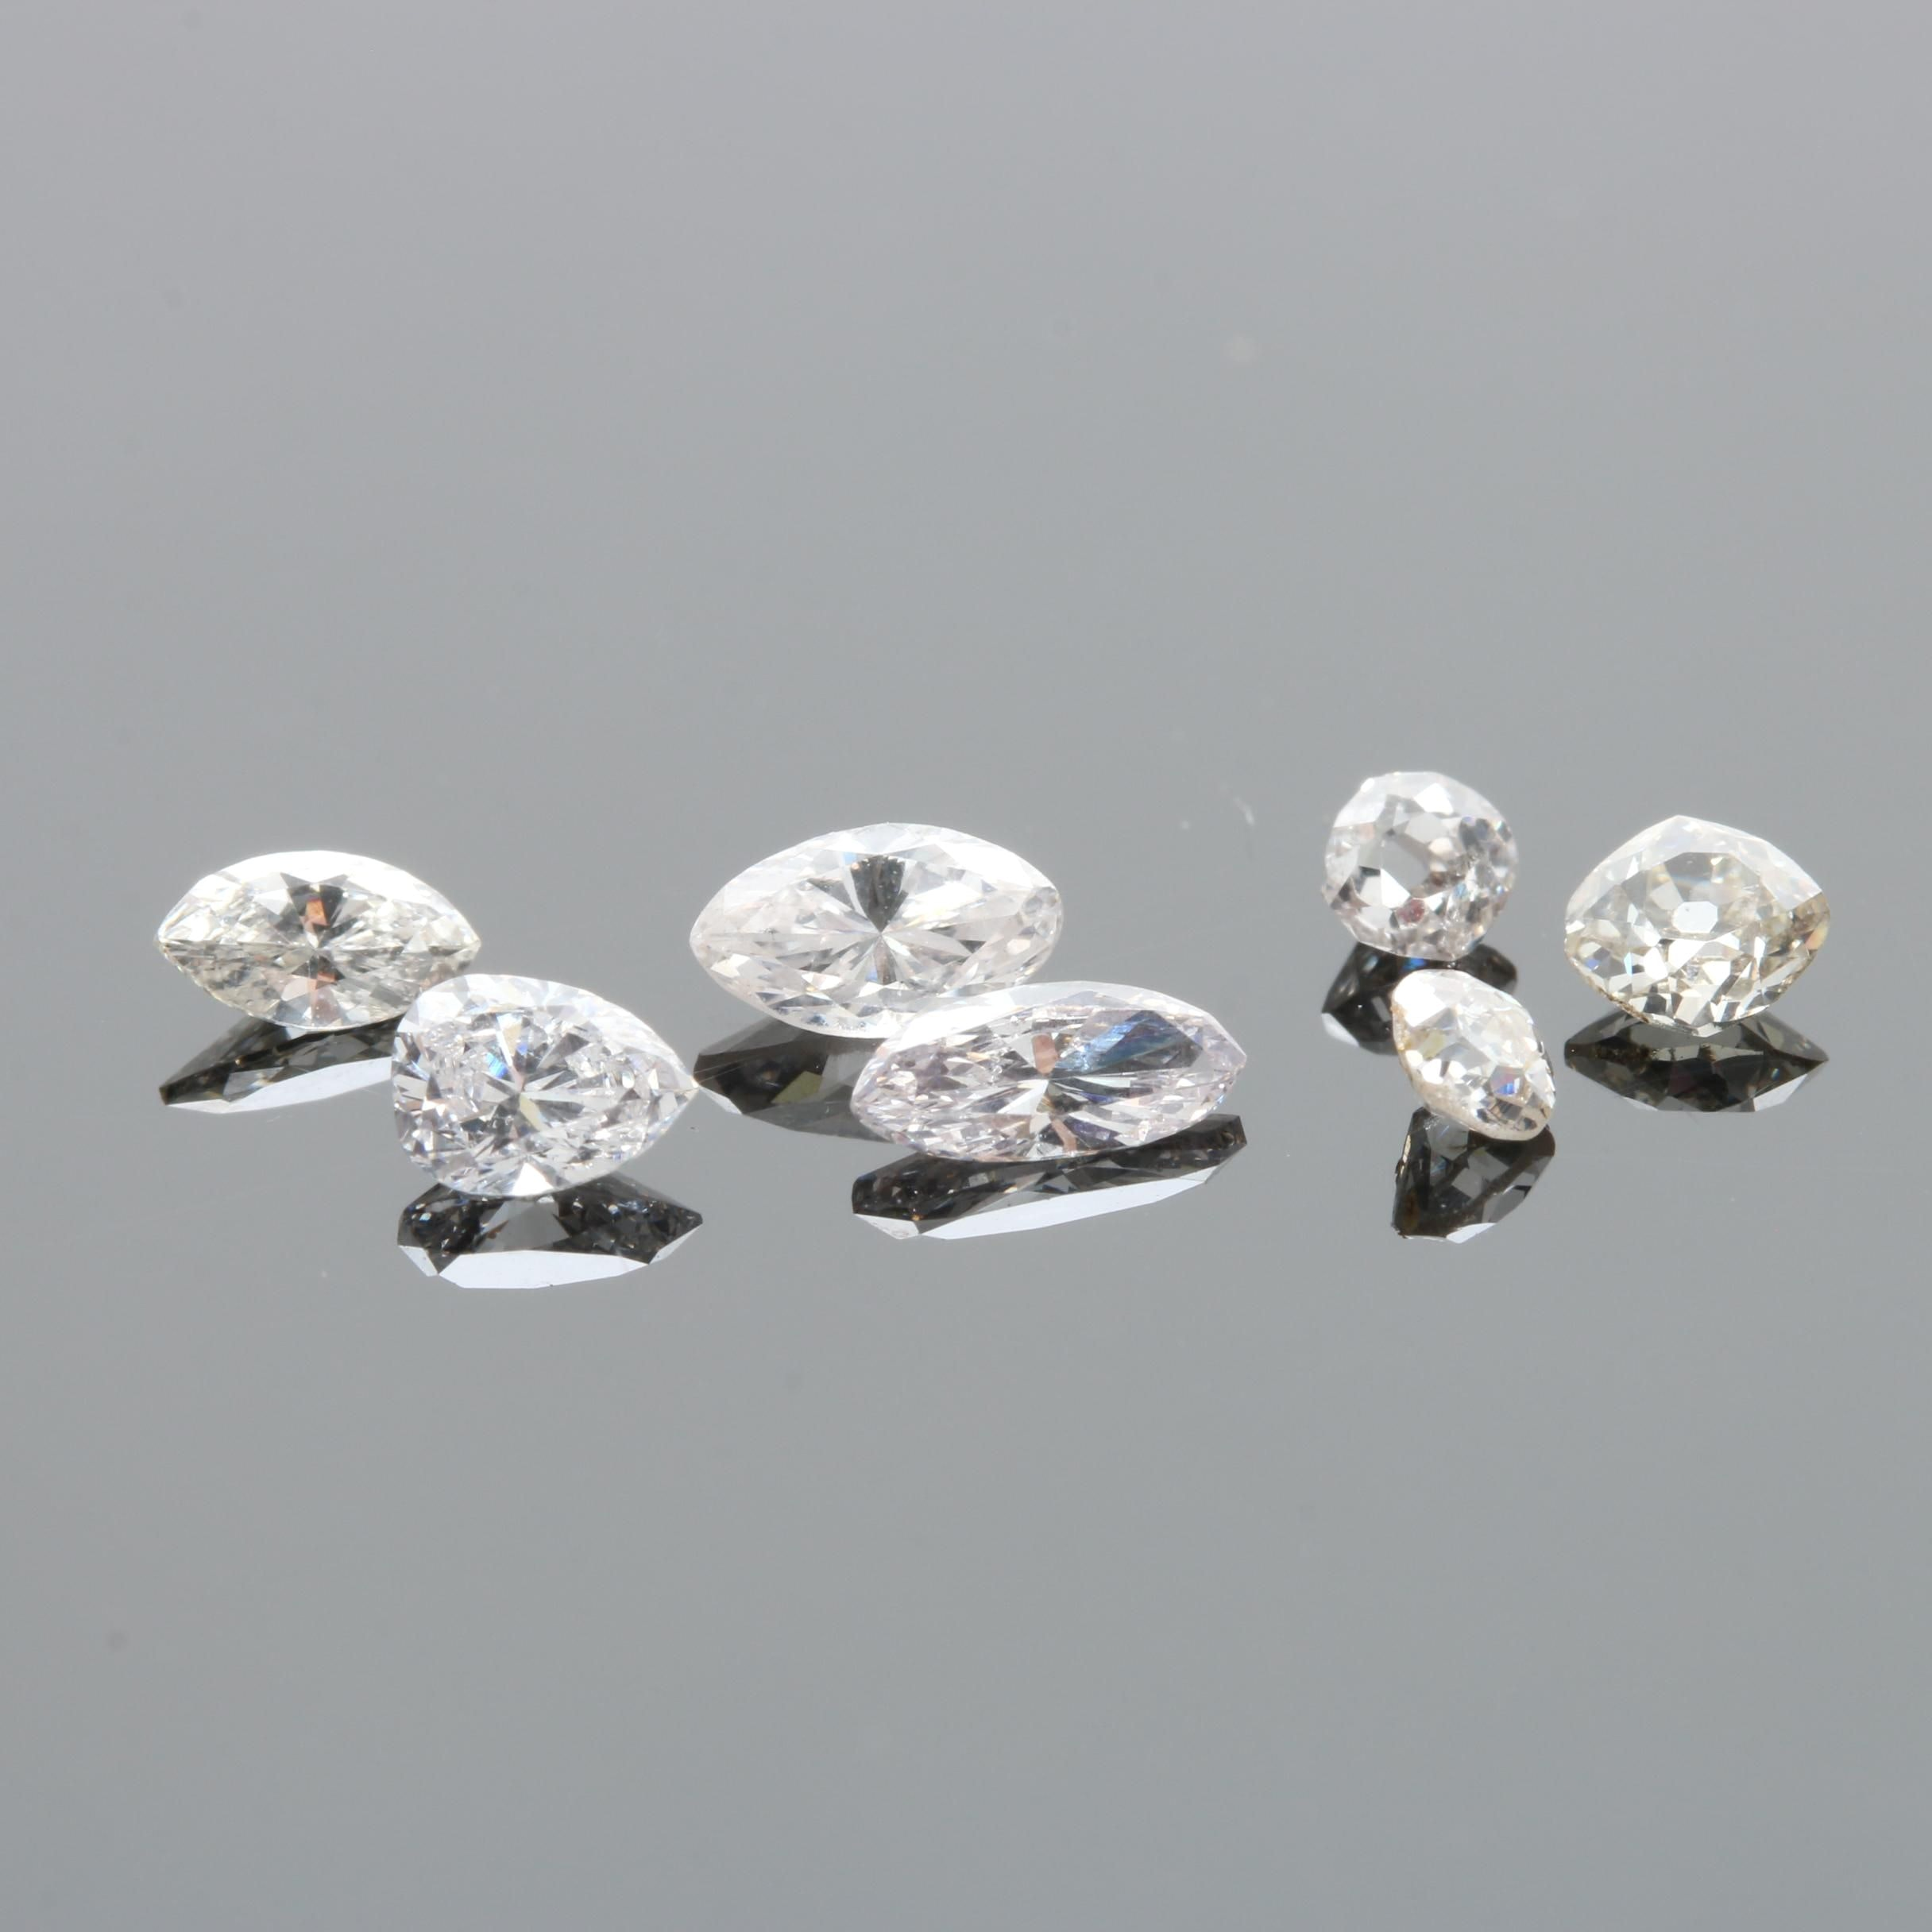 1.36 CTW Loose Diamonds